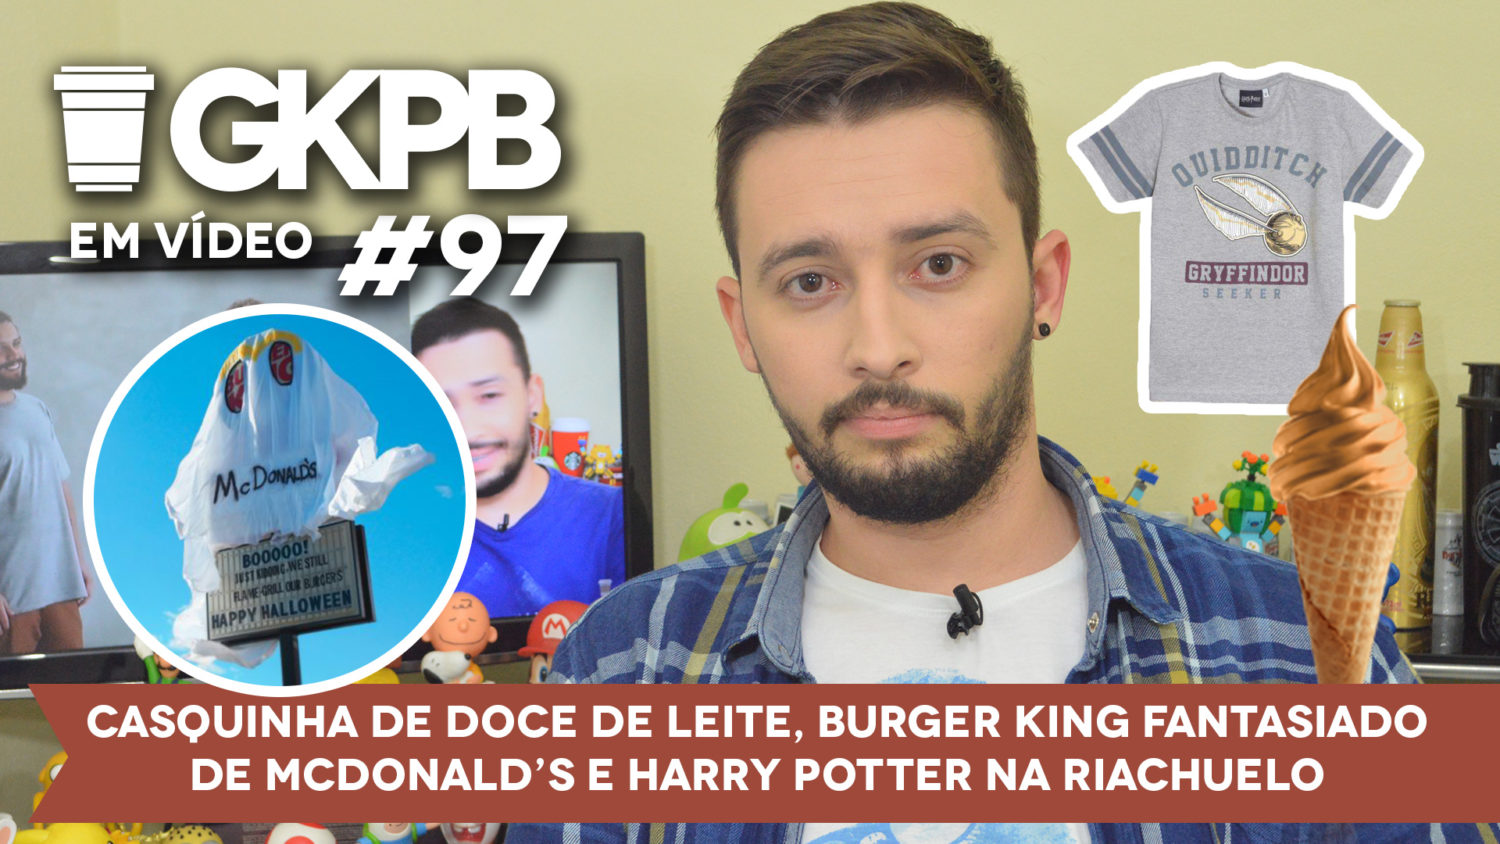 gkpb-em-video-97-casquinha-doce-de-leite-mcdonalds-burger-king-fantasia-halloween-harry-potter-riachuelo